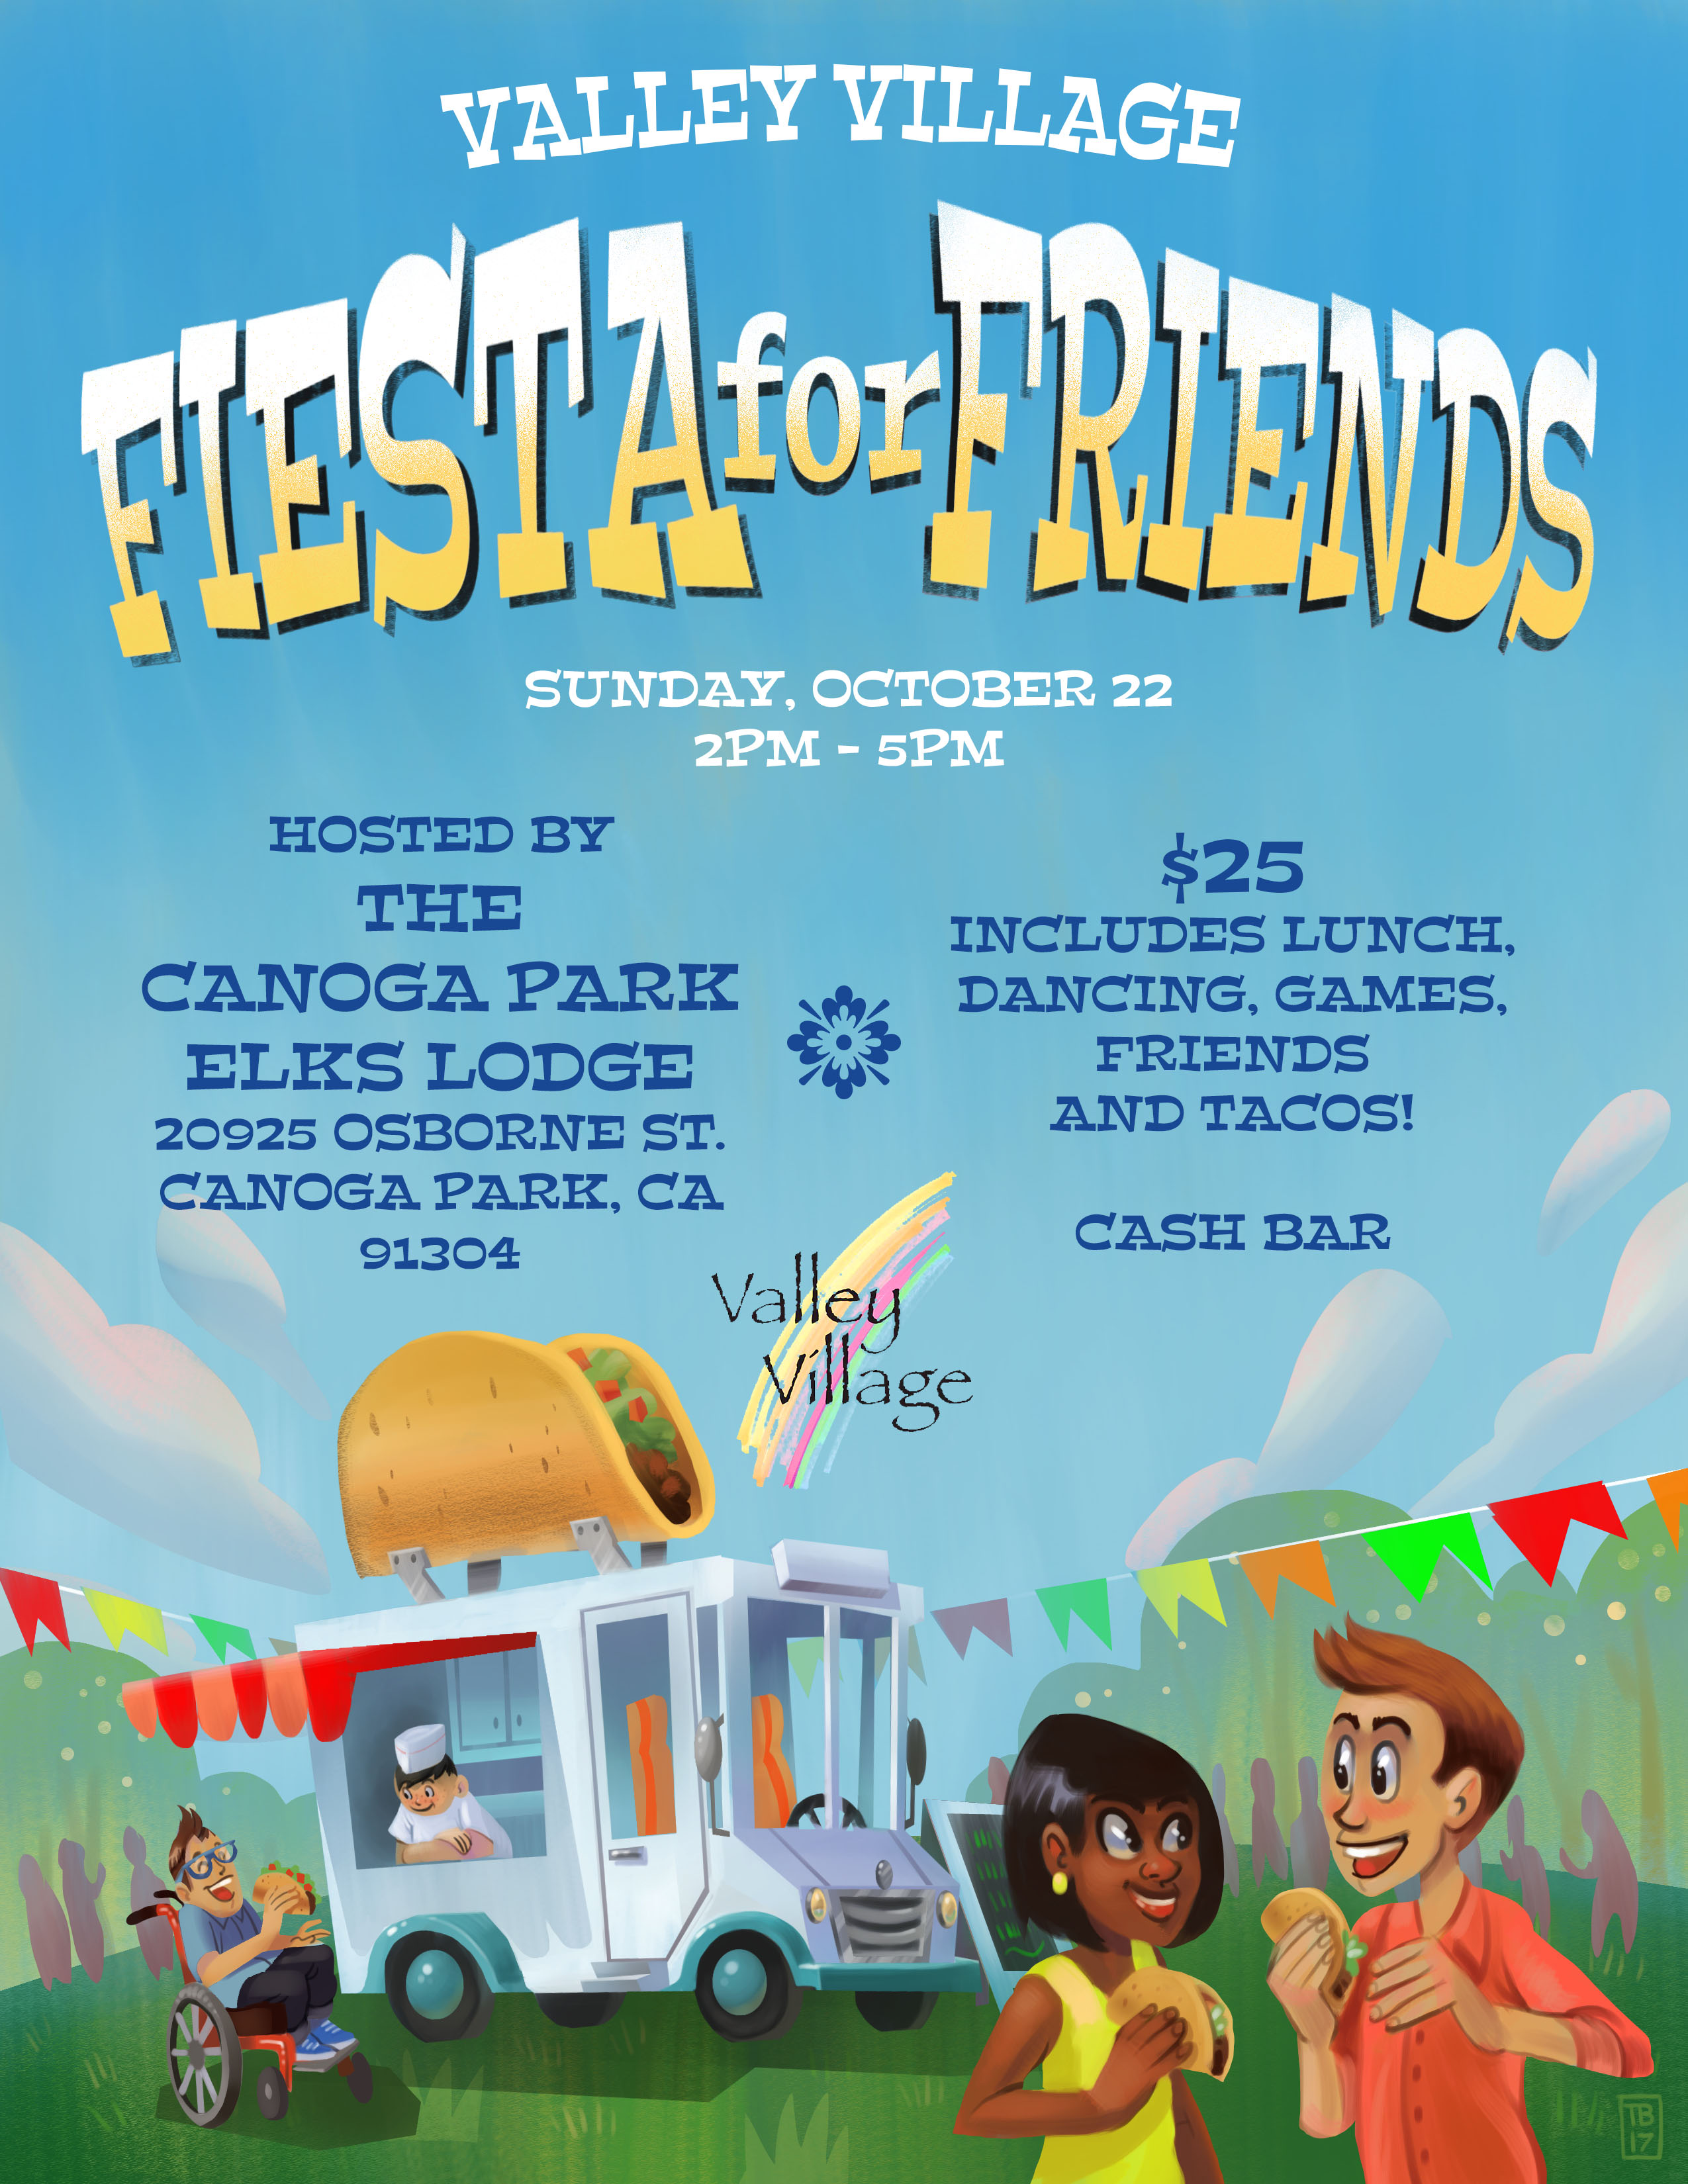 Fiesta for Friends, Sunday, October 22, 2017, hosted by the Canoga Park Elks Lodge, fundraiser for Valley Village. $25 includes tacos, horchata, lawn games. RSVP to (818) 587-9450